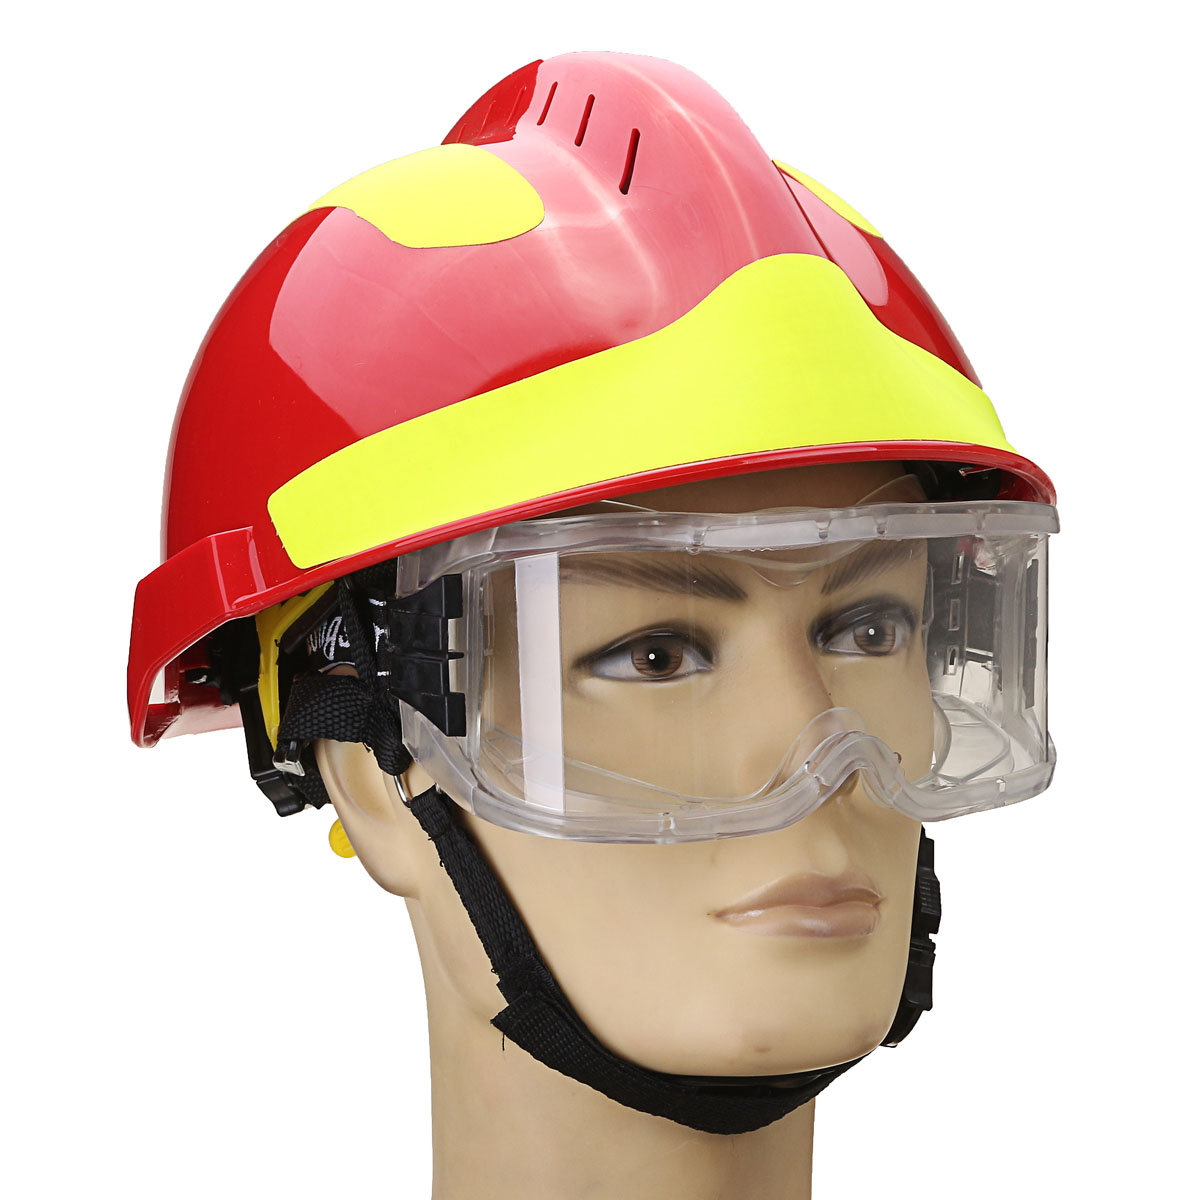 Hot Rescue Helmet Fire Fighter Protective Glasses Safety Protector Workplace Safety Fire Protection 53CM-63CM tactical wargame motorcycling helmet w eye protection glasses black size l7